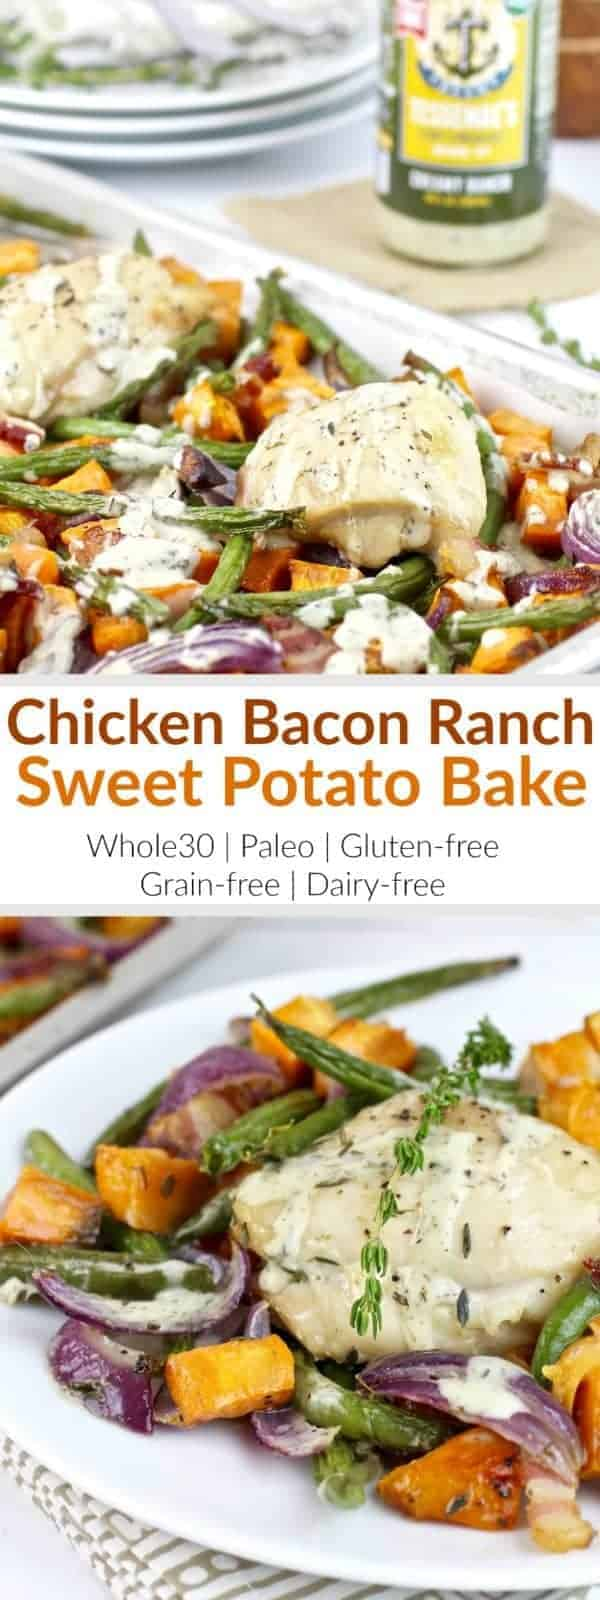 One-pan Chicken Bacon Ranch Sweet Potato Bake is a highly palatable meal and will likely become the newest family favorite and addition to your menu rotation! | Whole30 | Paleo | Gluten-free | Grain-free | Dairy-free | therealfoodrds.com